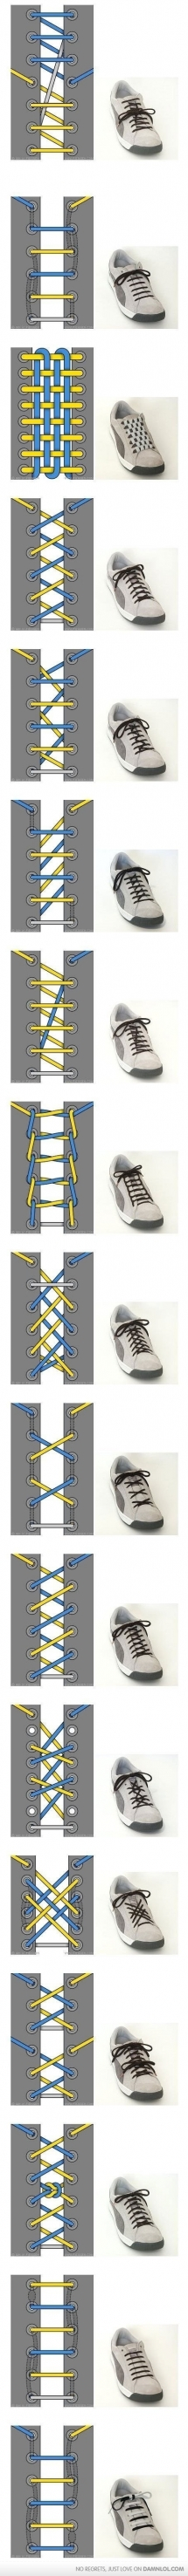 36 Cool Ways To Tie Your Shoe Laces - How to tie things